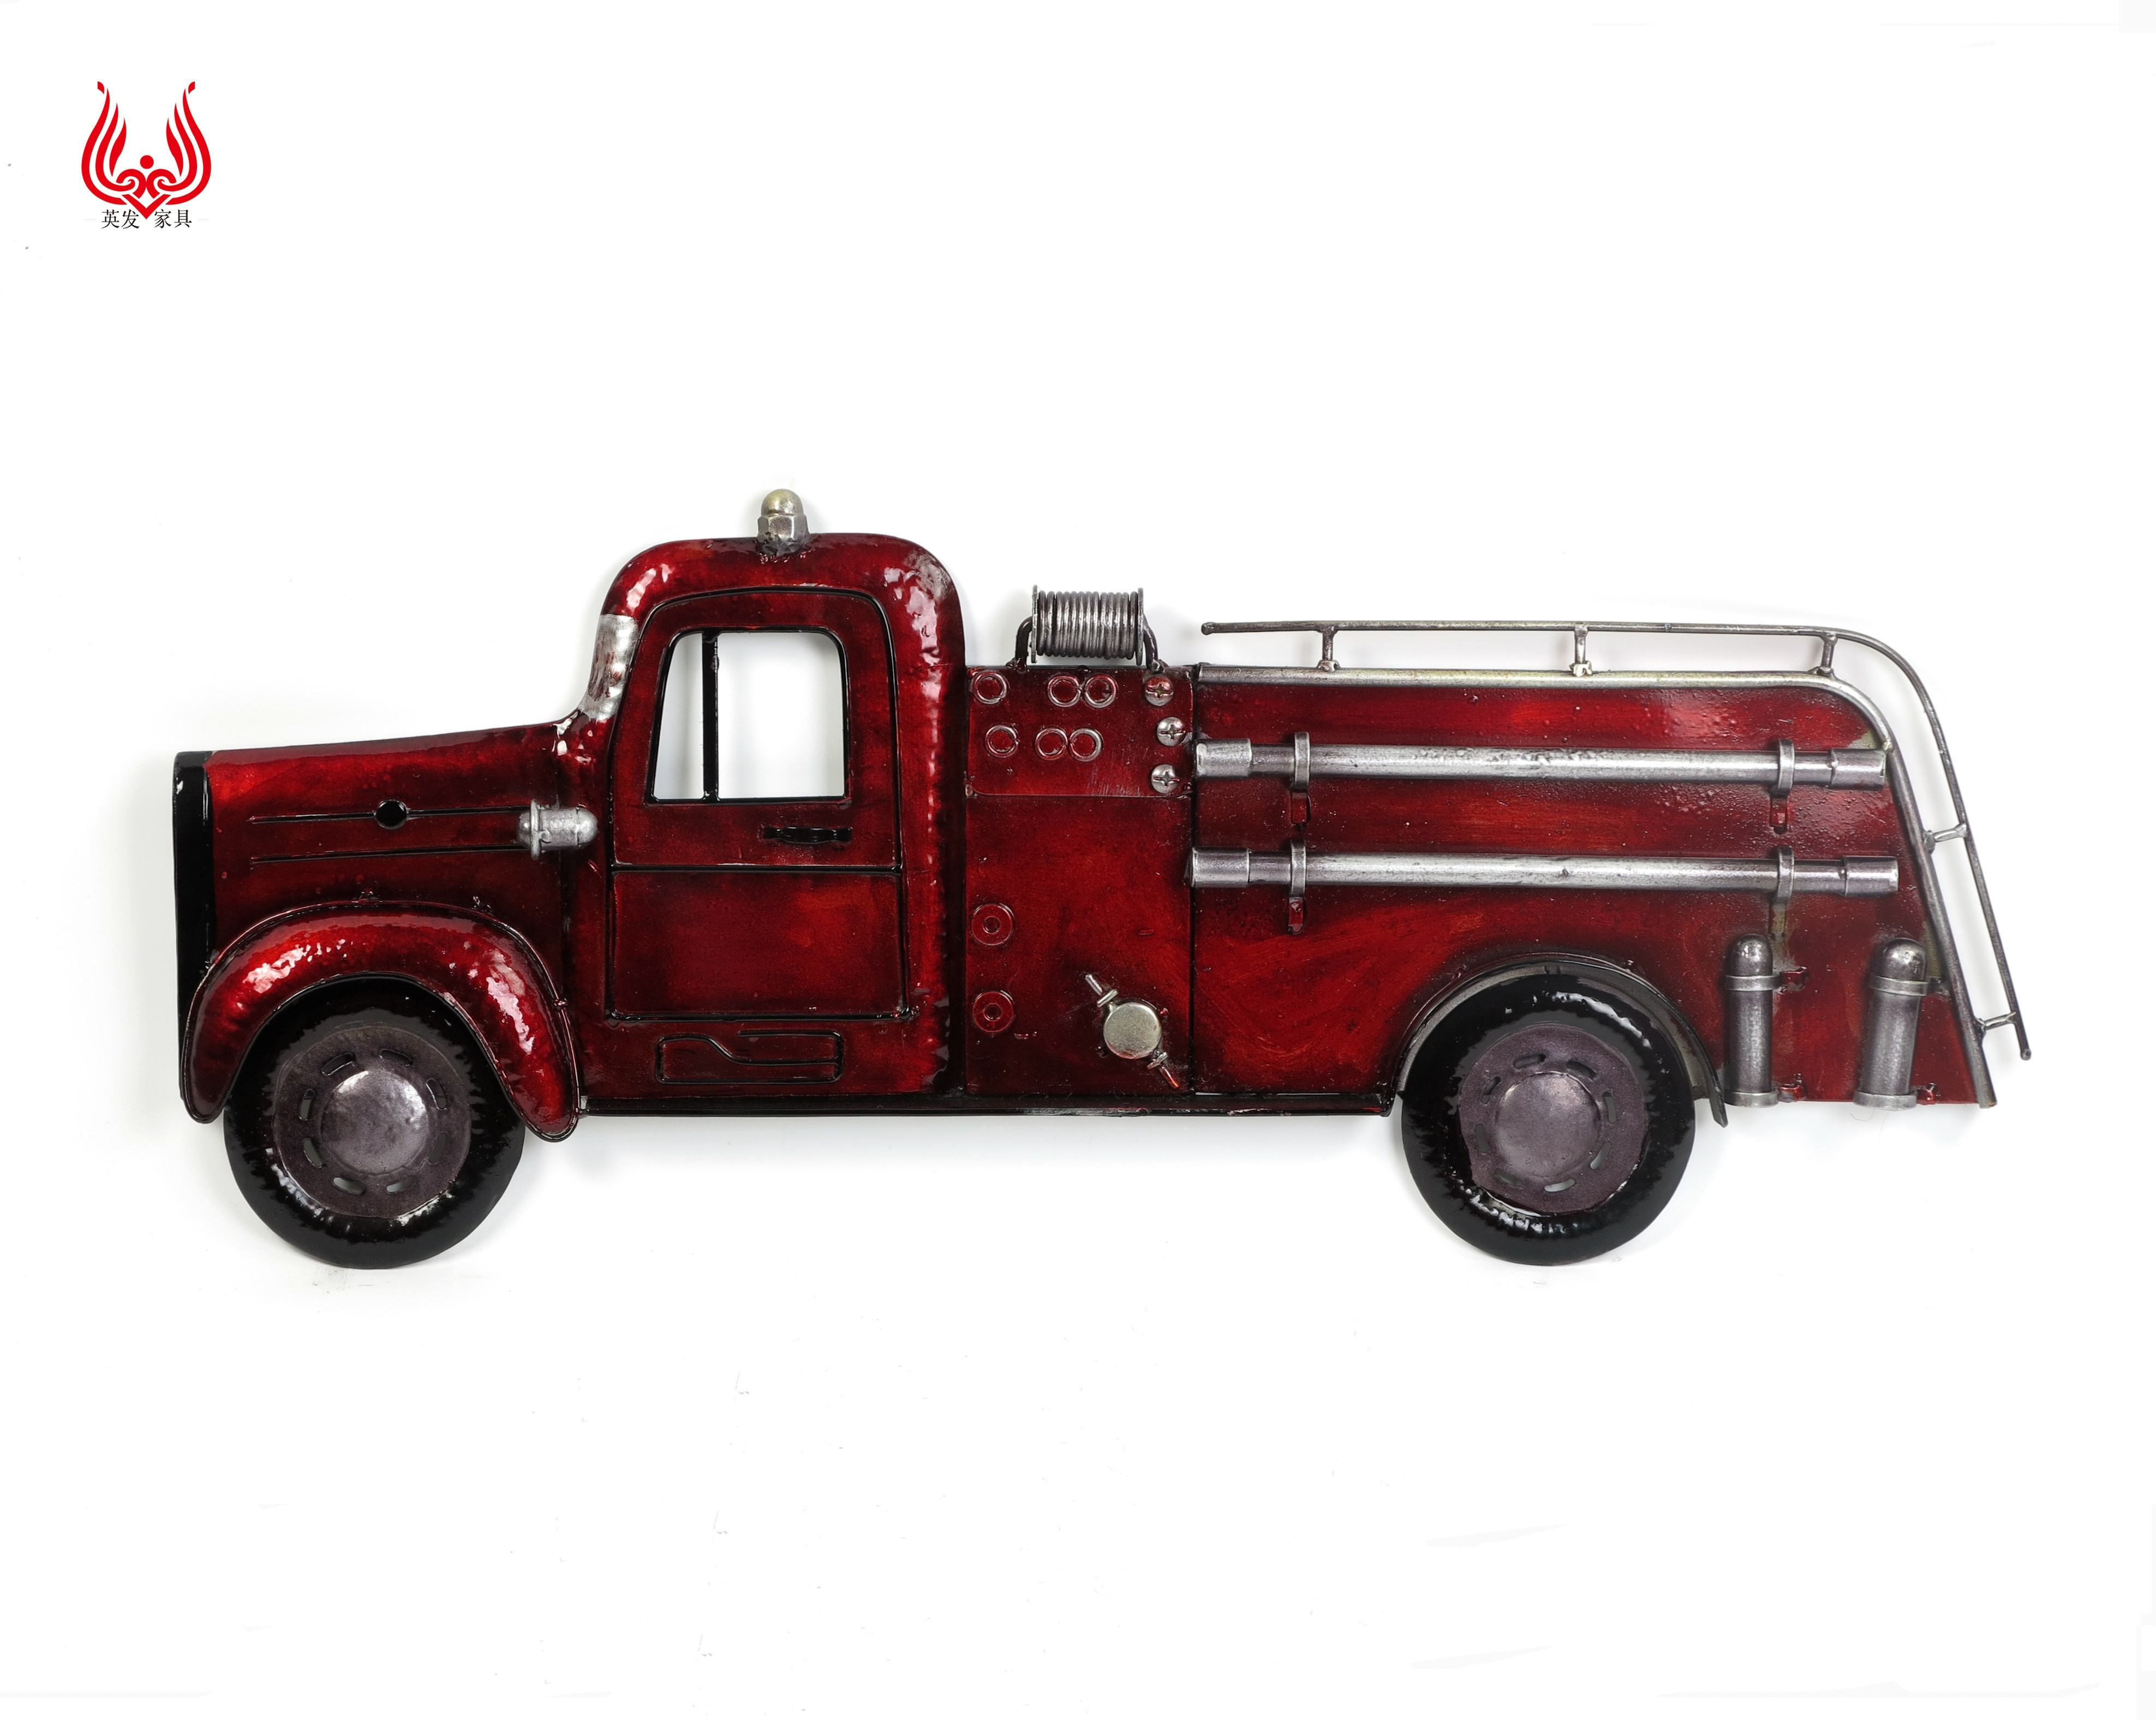 YINFA Red Half Truck City Style Car Vintage Home Decoration Metal Wall Art Hanging House Decor